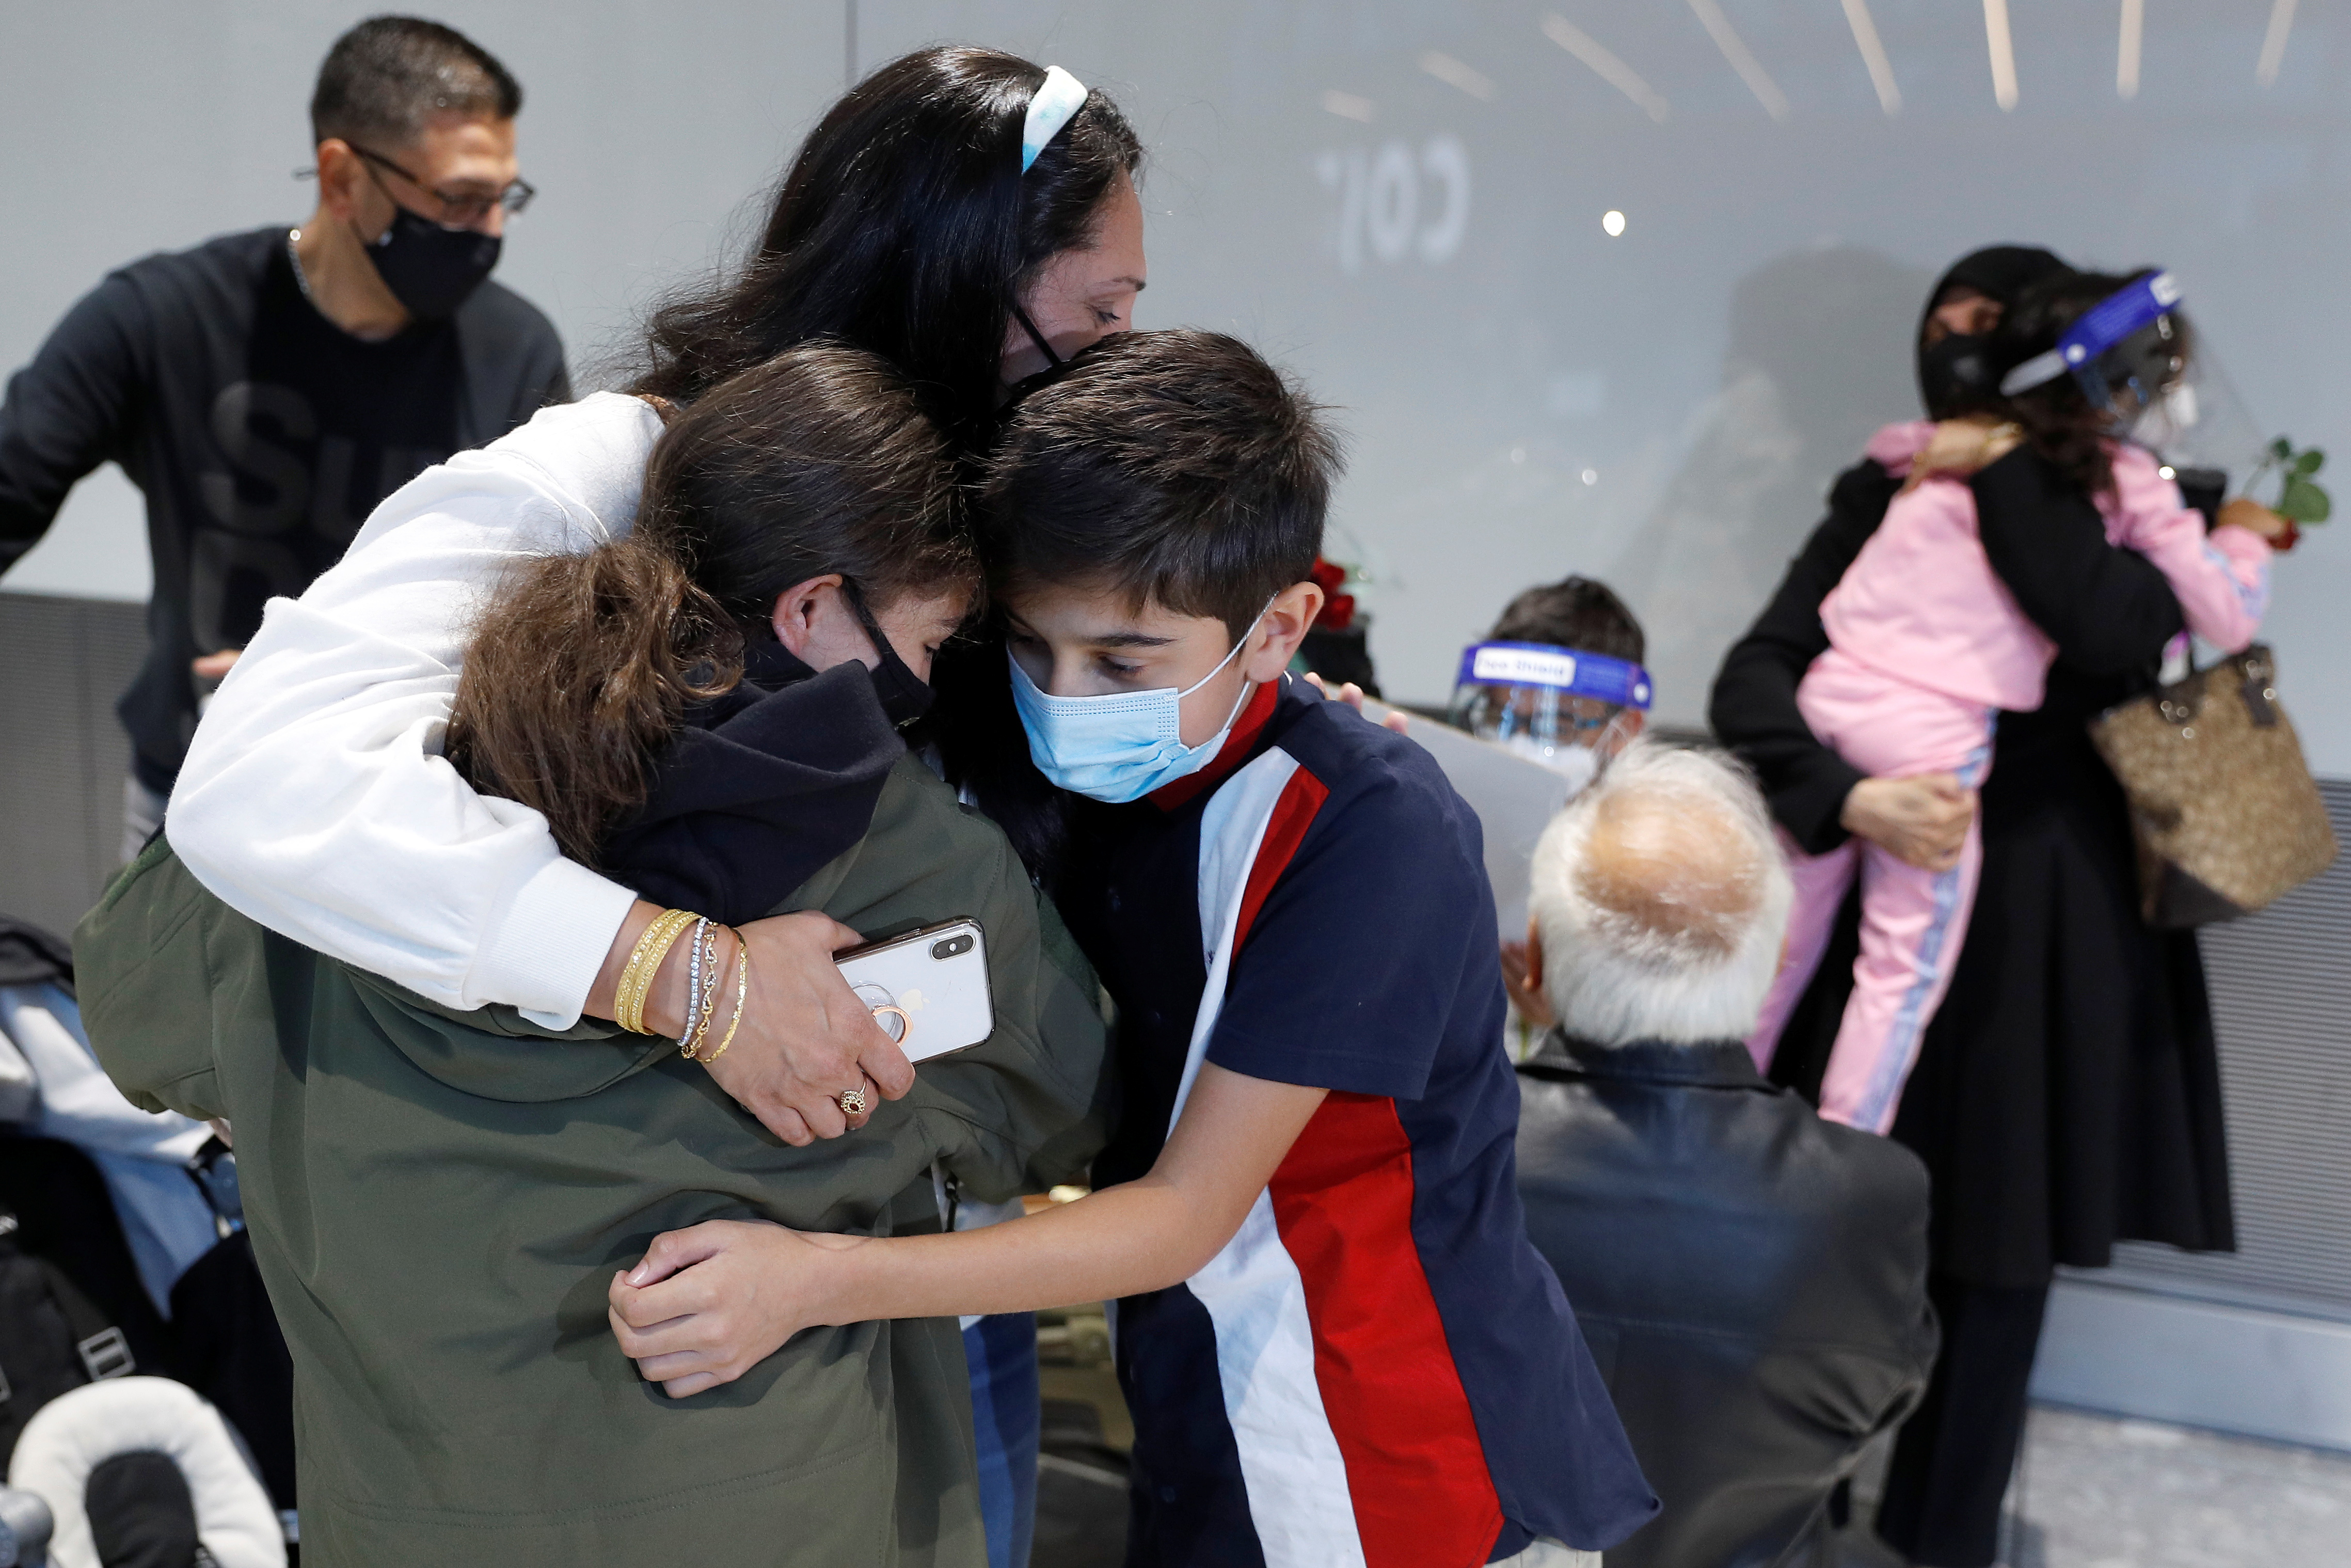 People meeting family members from Charlotte in the U.S. embrace at the International arrivals area of Terminal 5 in London's  Heathrow Airport, Britain, August 2, 2021.  REUTERS/Peter Nicholls